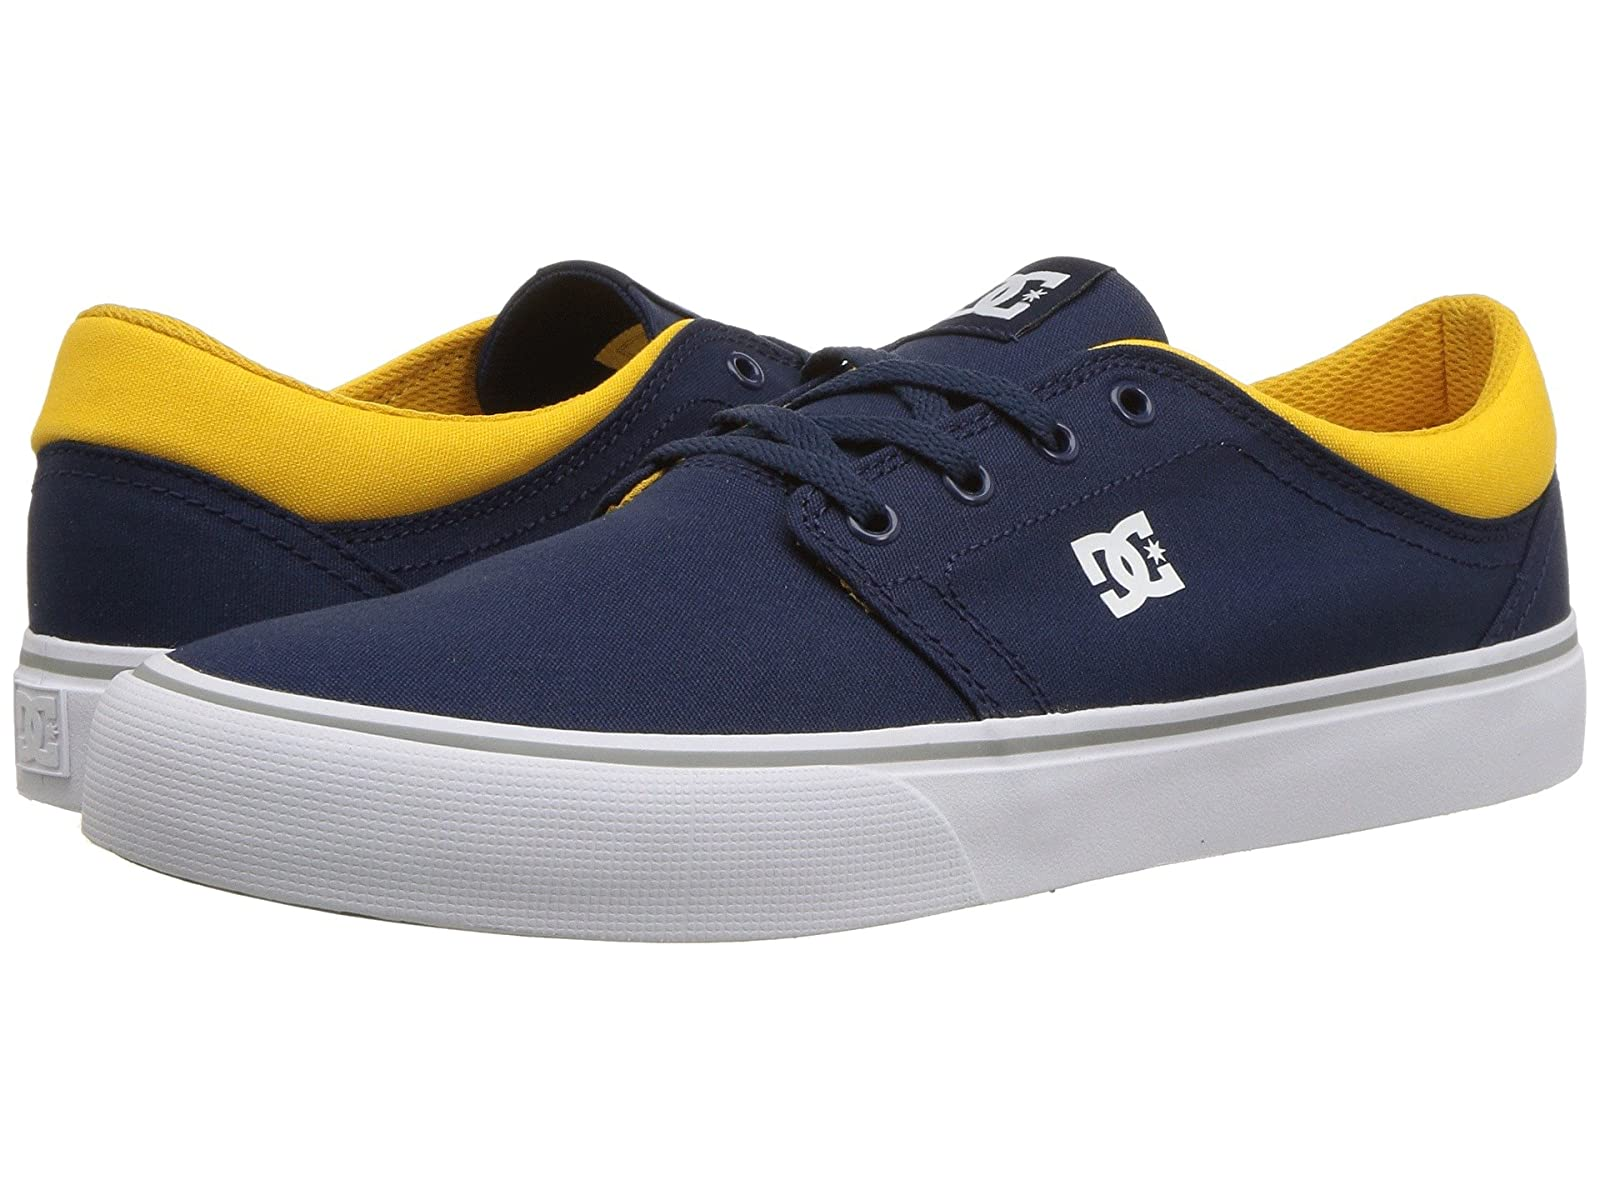 DC Trase TXAtmospheric grades have affordable shoes